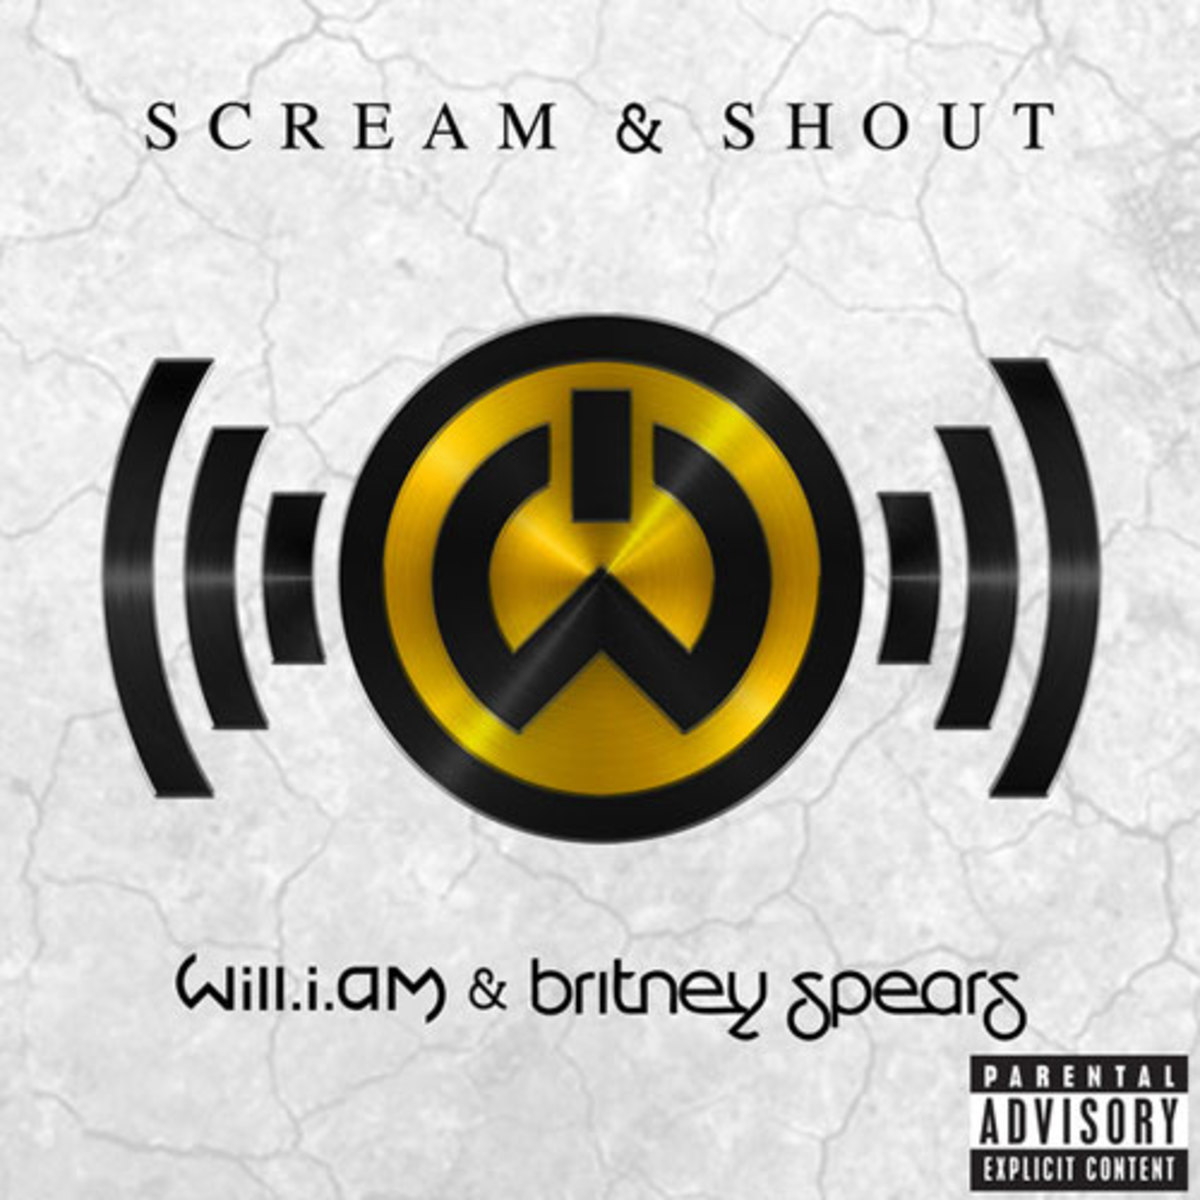 william-screamshout.jpg